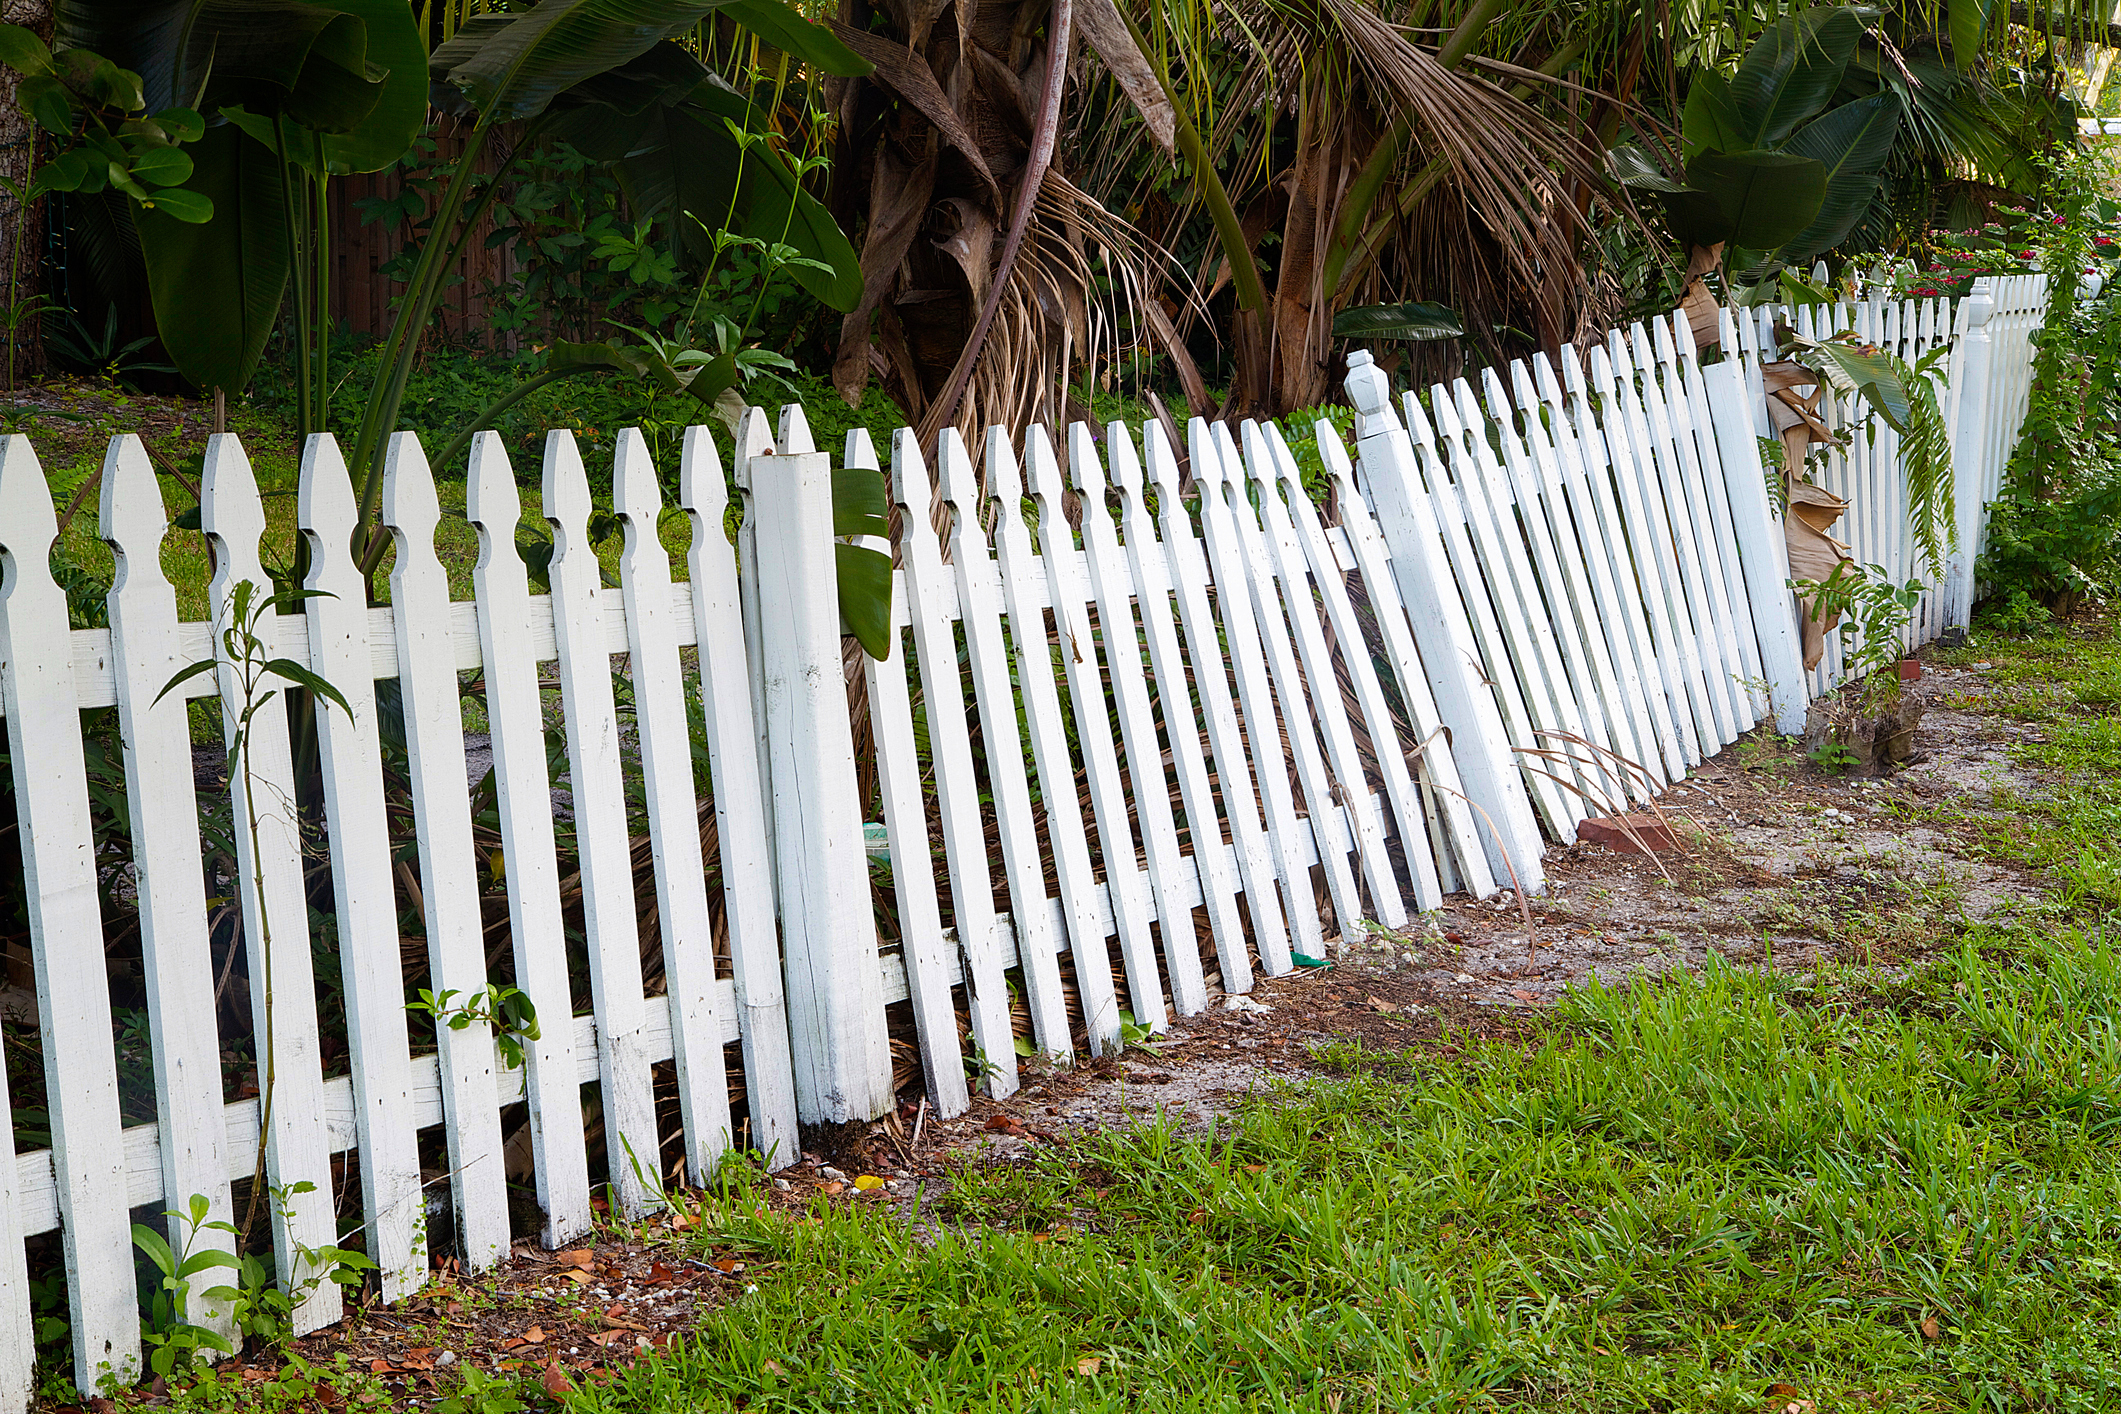 Leaning Fence Repair